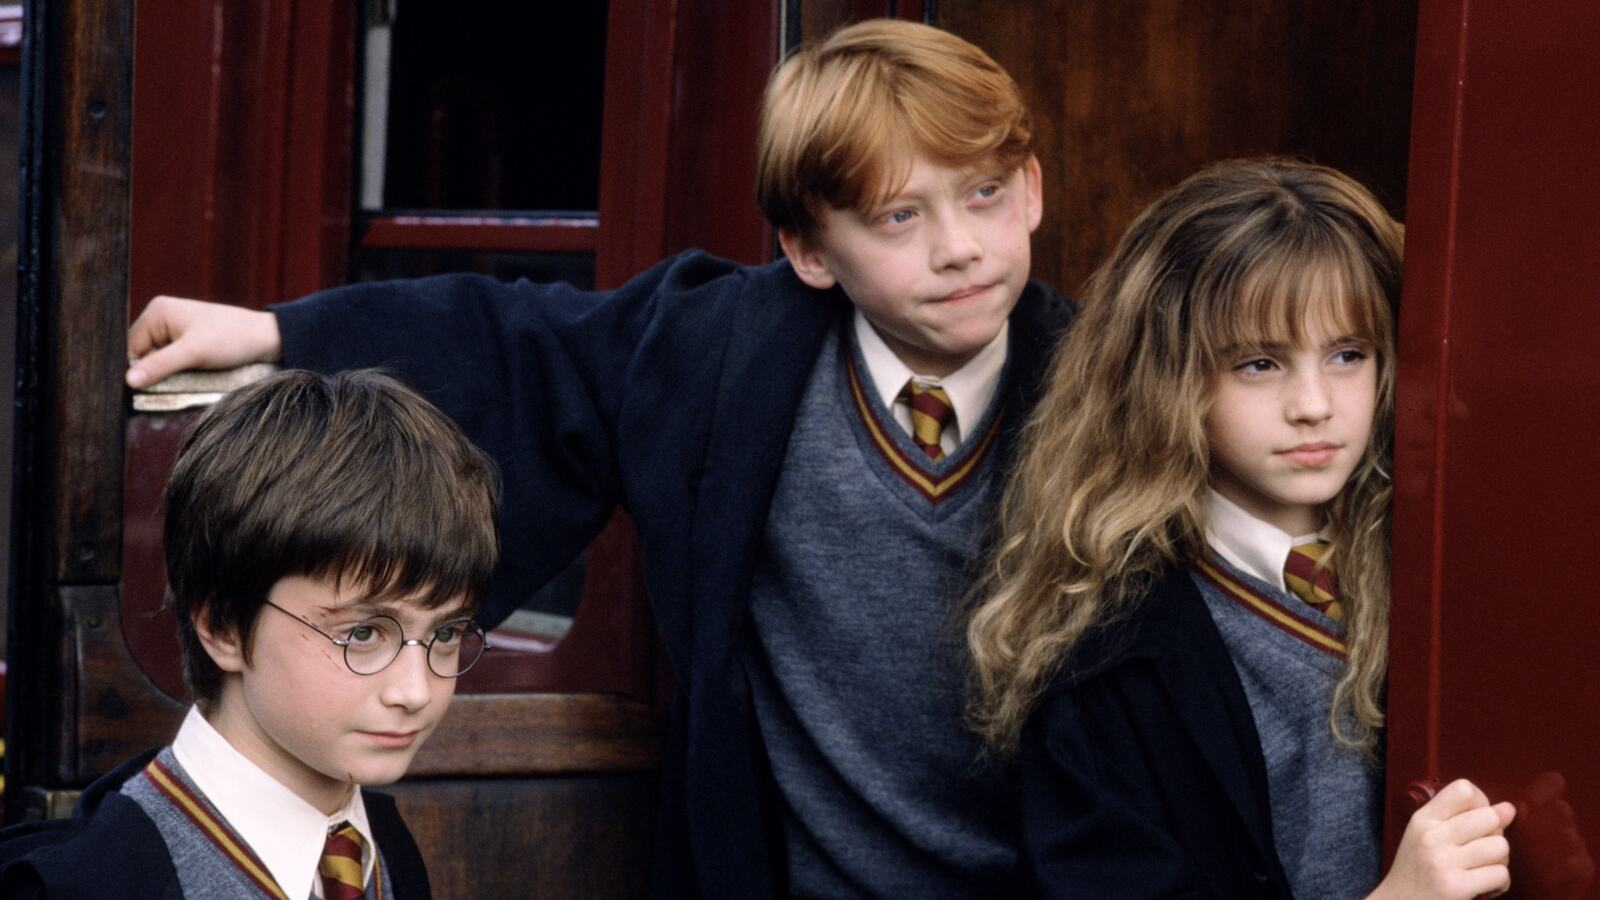 Still from Harry Potter and the Philosopher's Stone (2001)